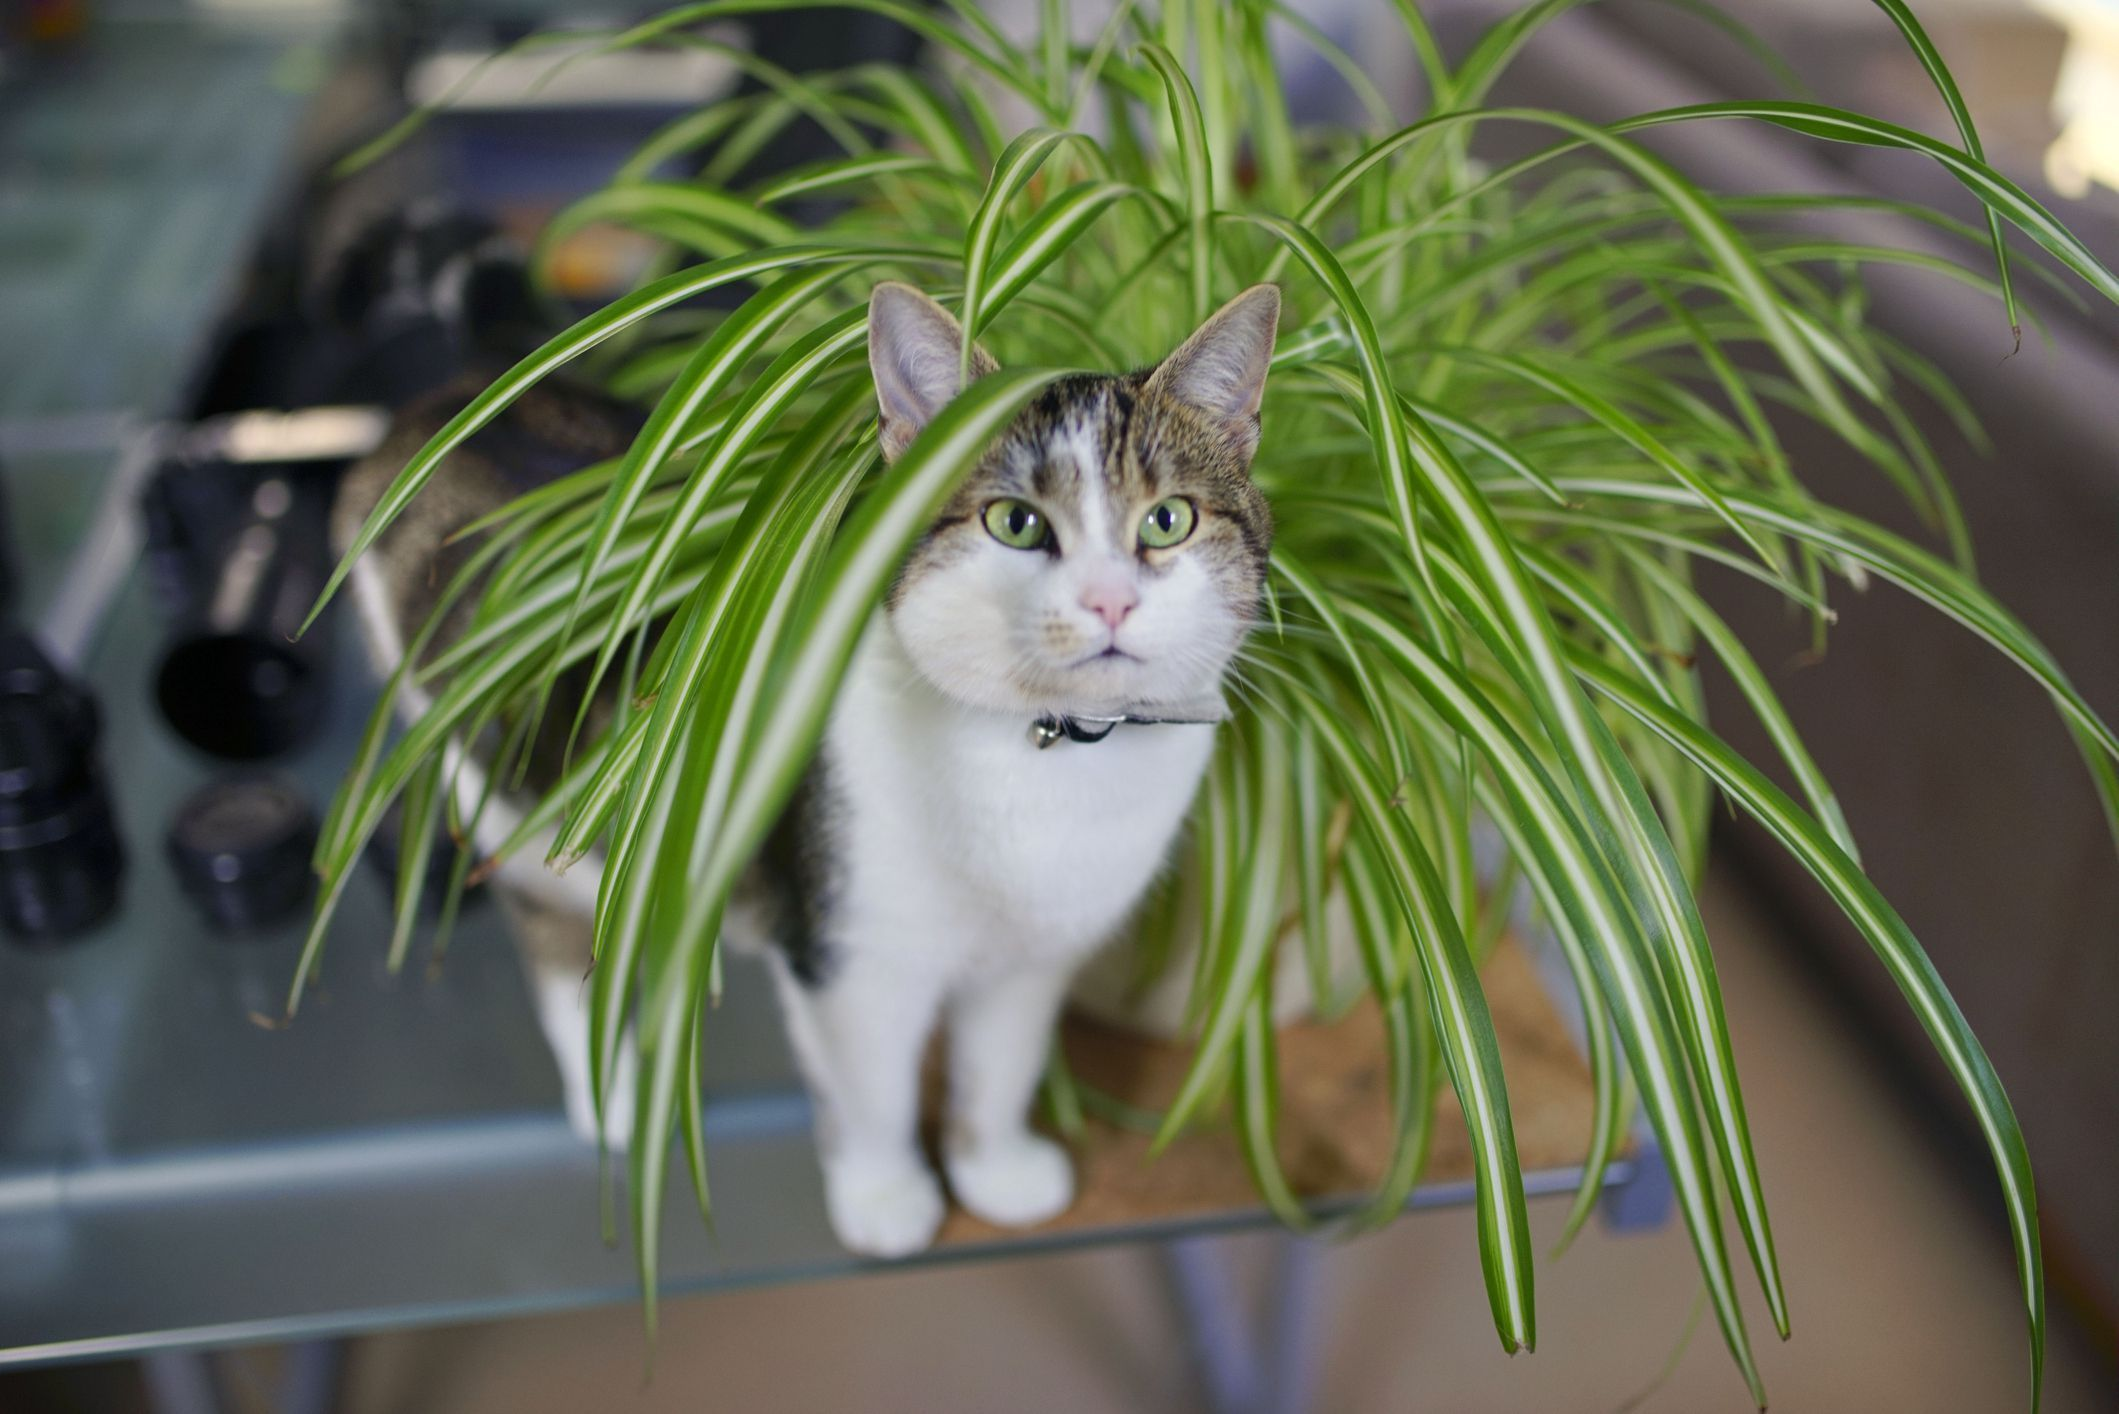 19 Pet Friendly Houseplants That Keep Cats And Dogs Safe Houseplants Safe For Cats Cat Safe Plants Low Light House Plants